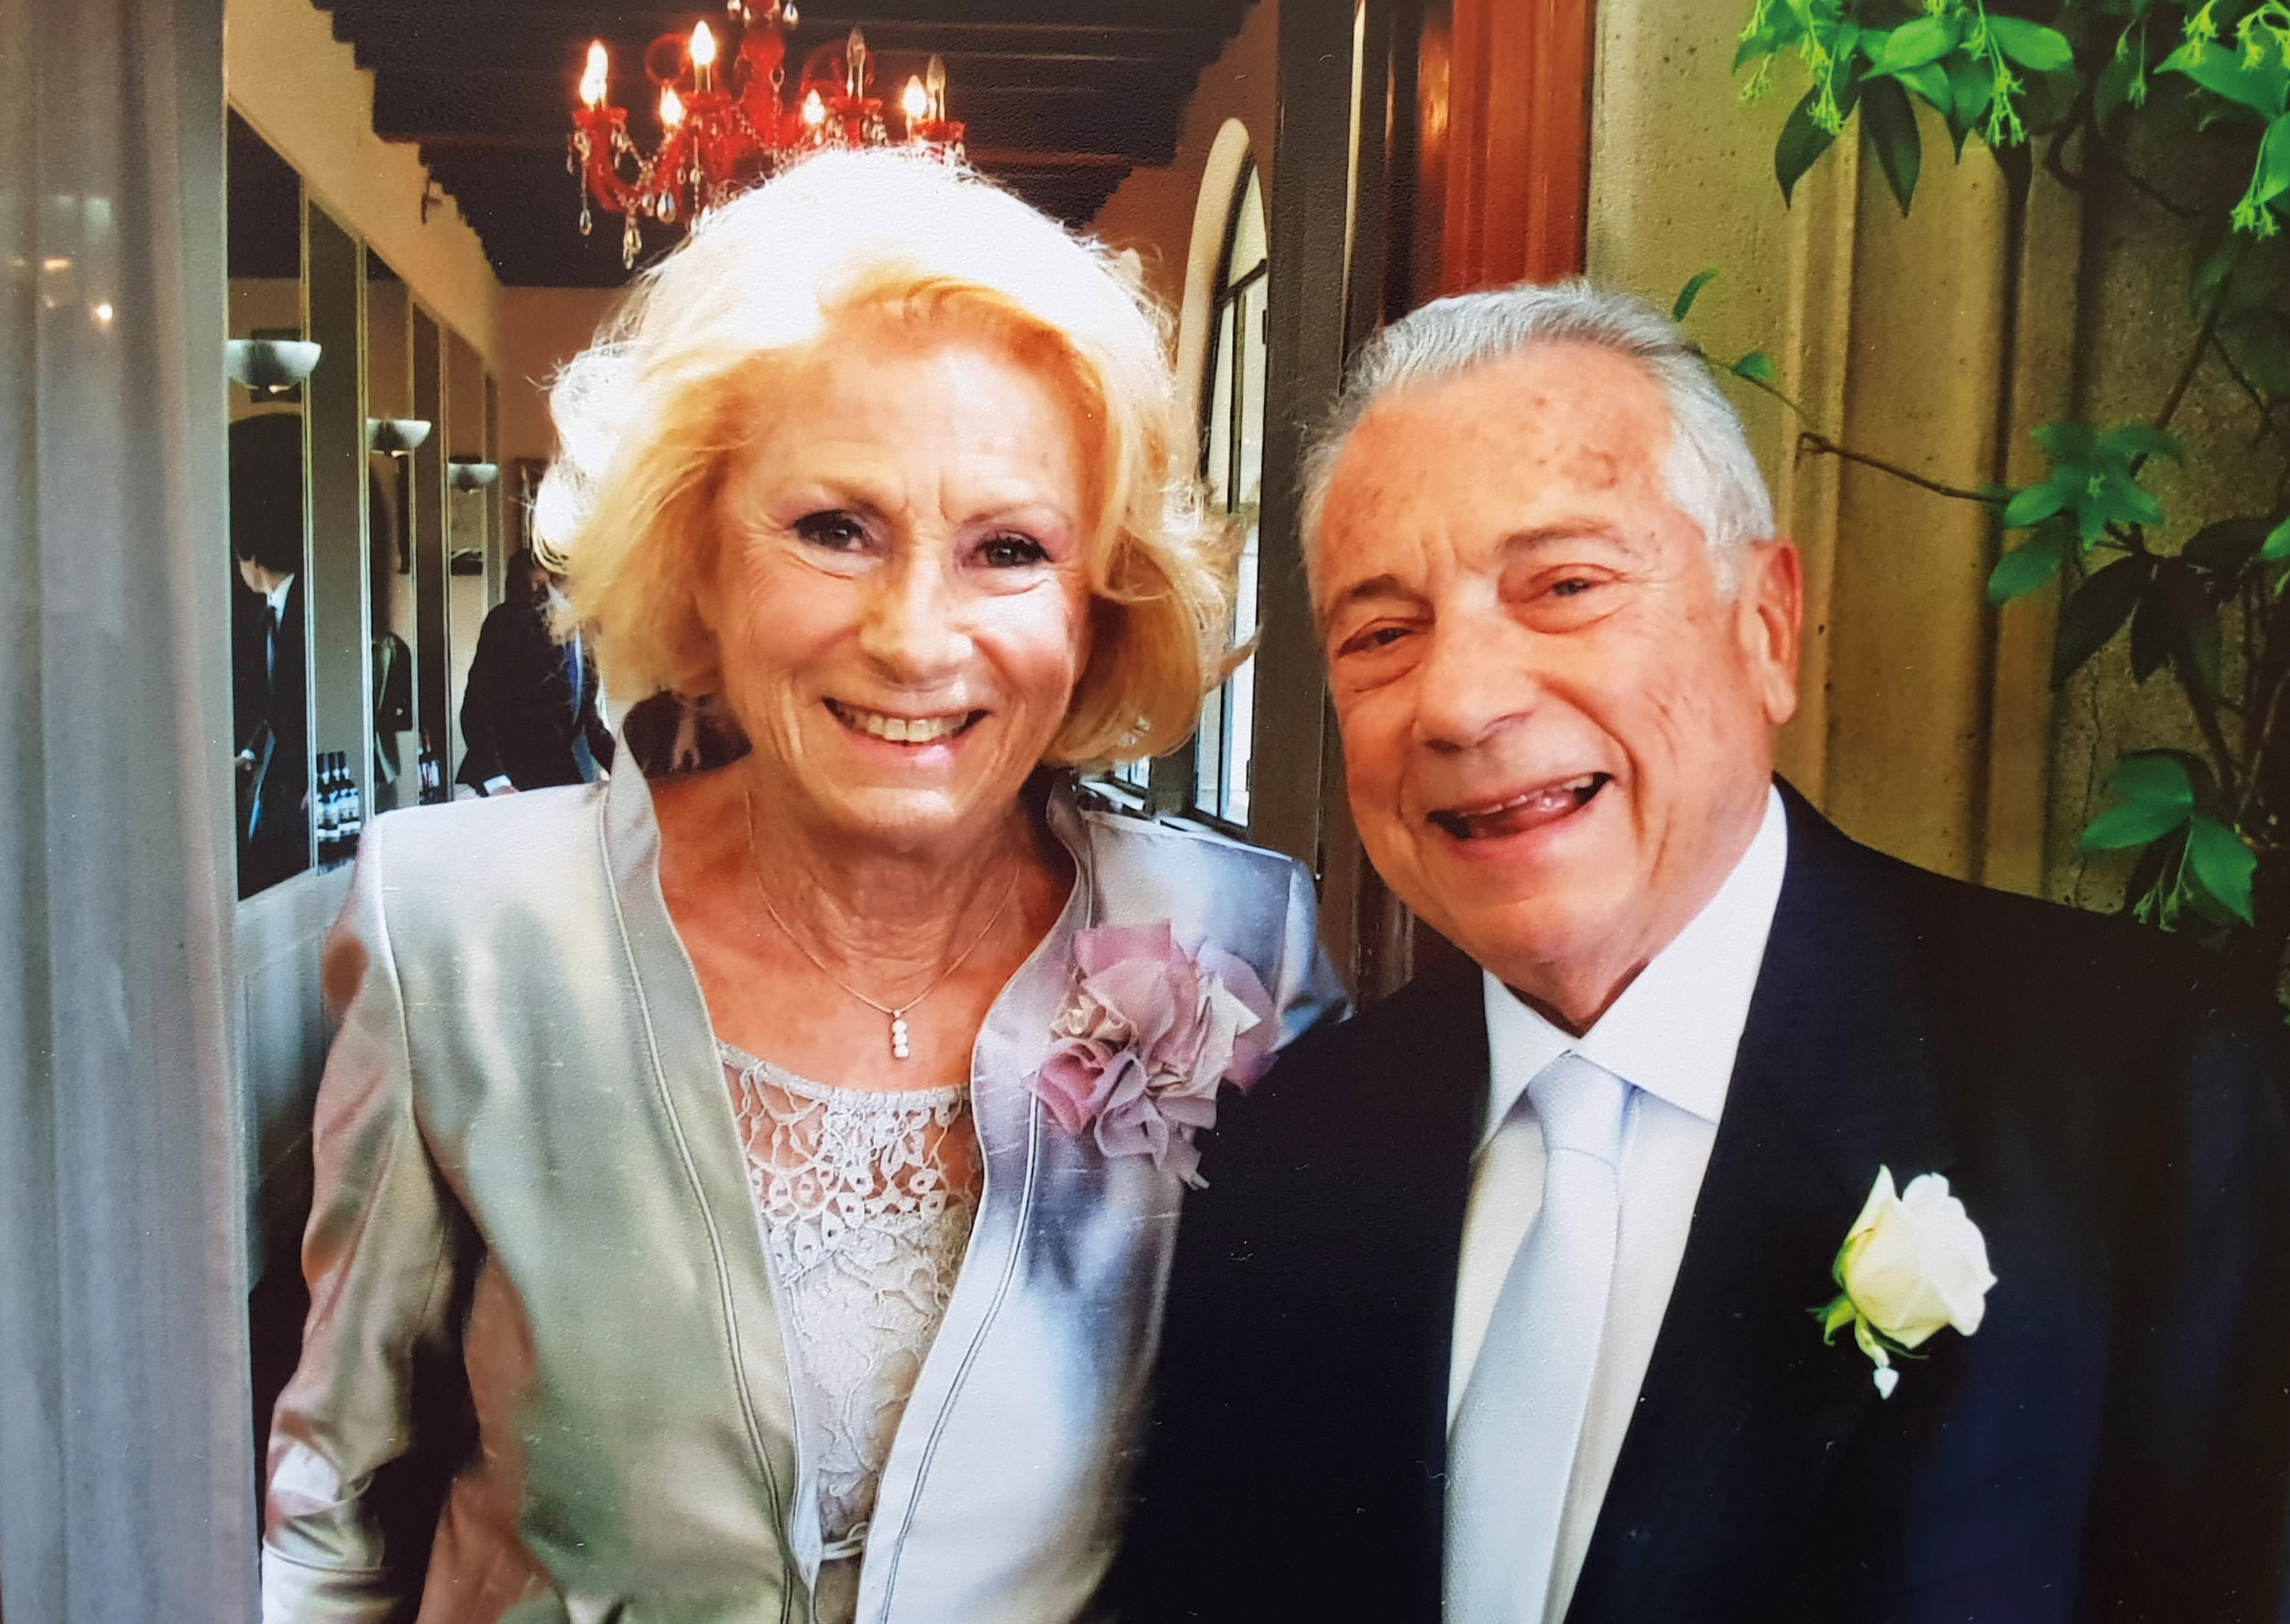 Carlo Alberto La Chiusa '55 and Maria Grazia on their wedding day.